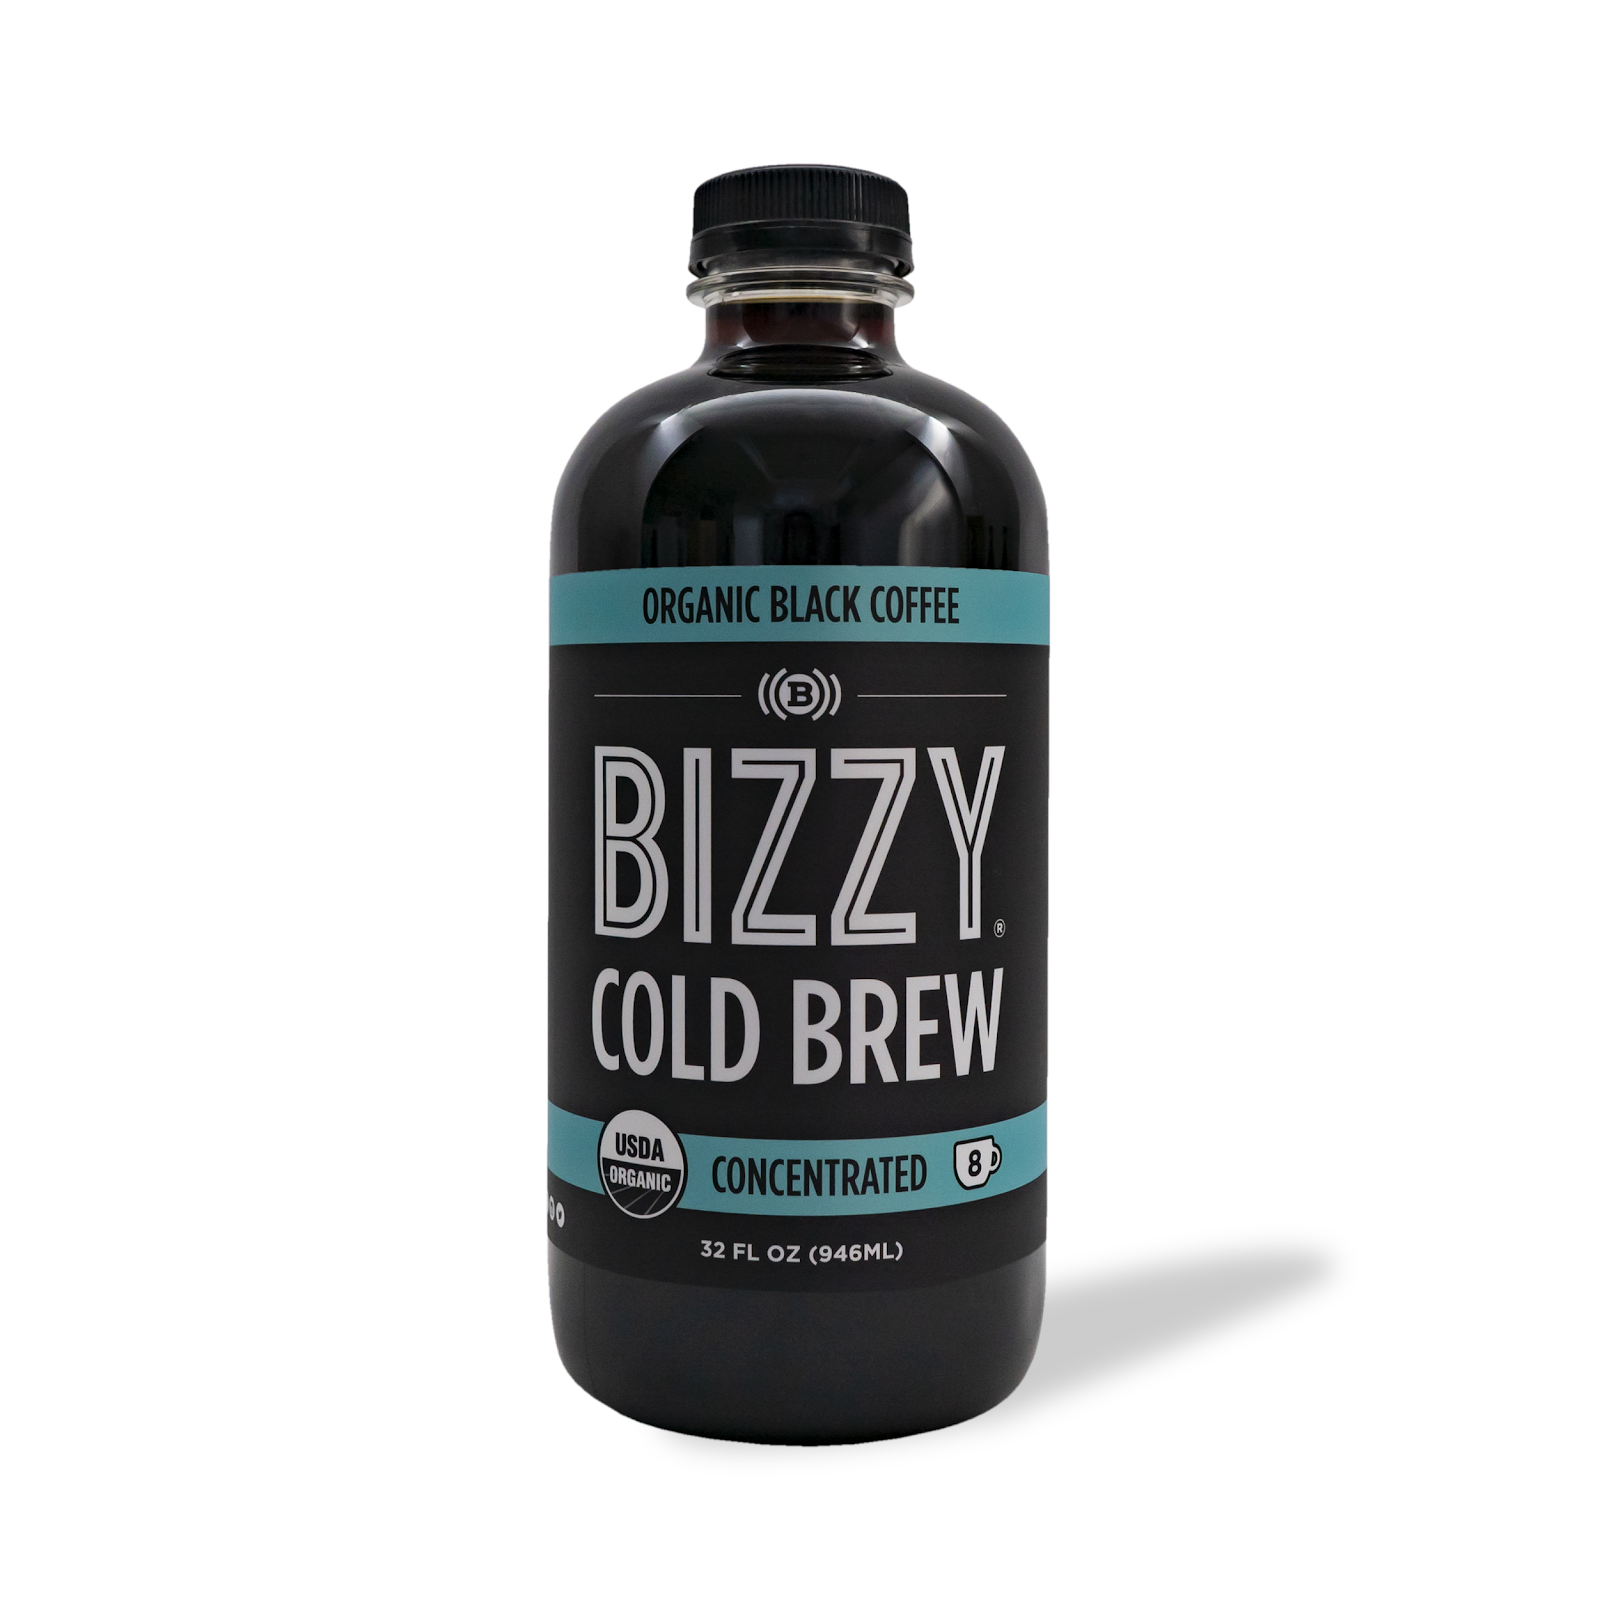 on-getting-our-cold-brew-coffee-brand-into-1000-retail-stores